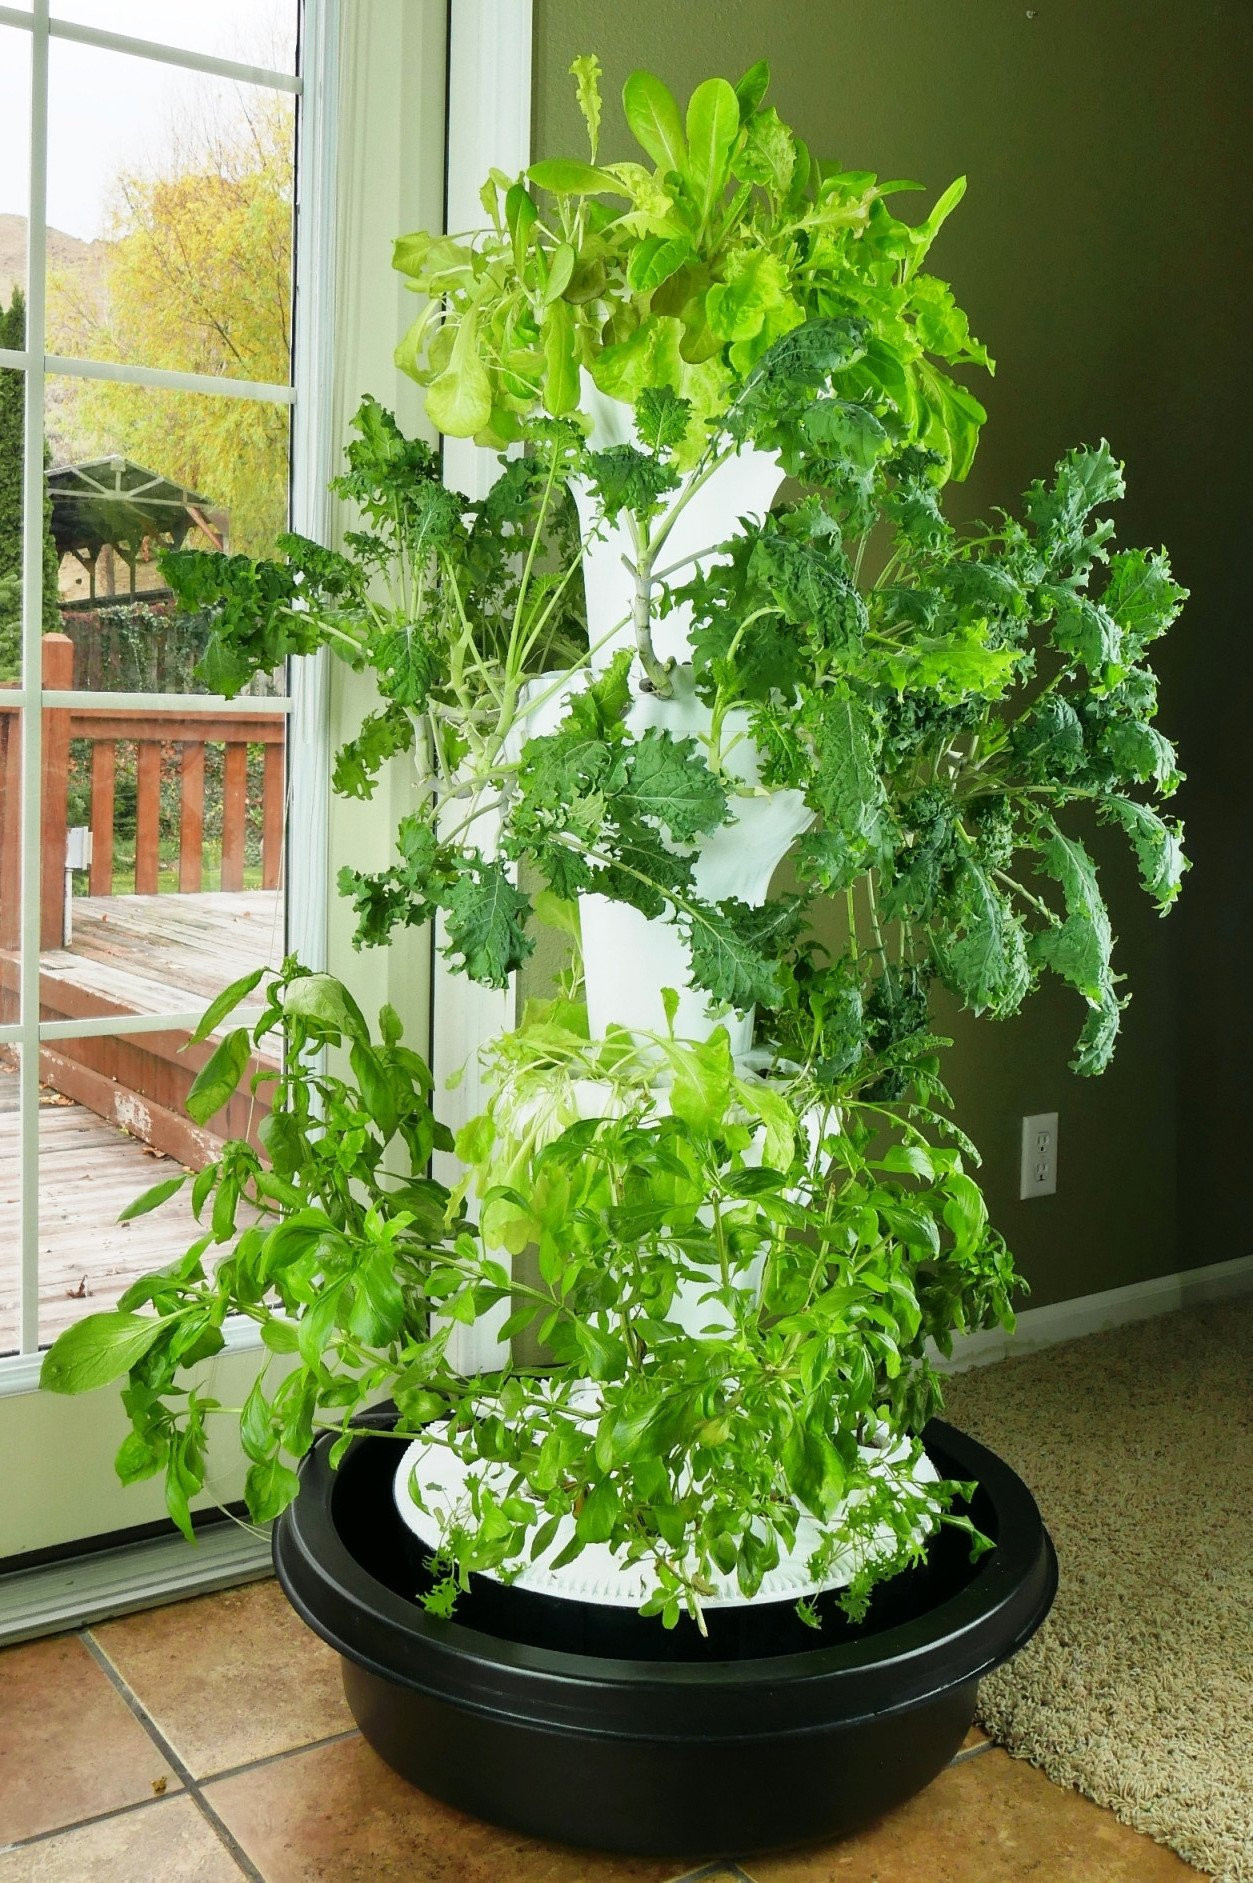 Best ideas about Vertical Hydroponic Garden . Save or Pin Vertical Hydroponic Systems Now.